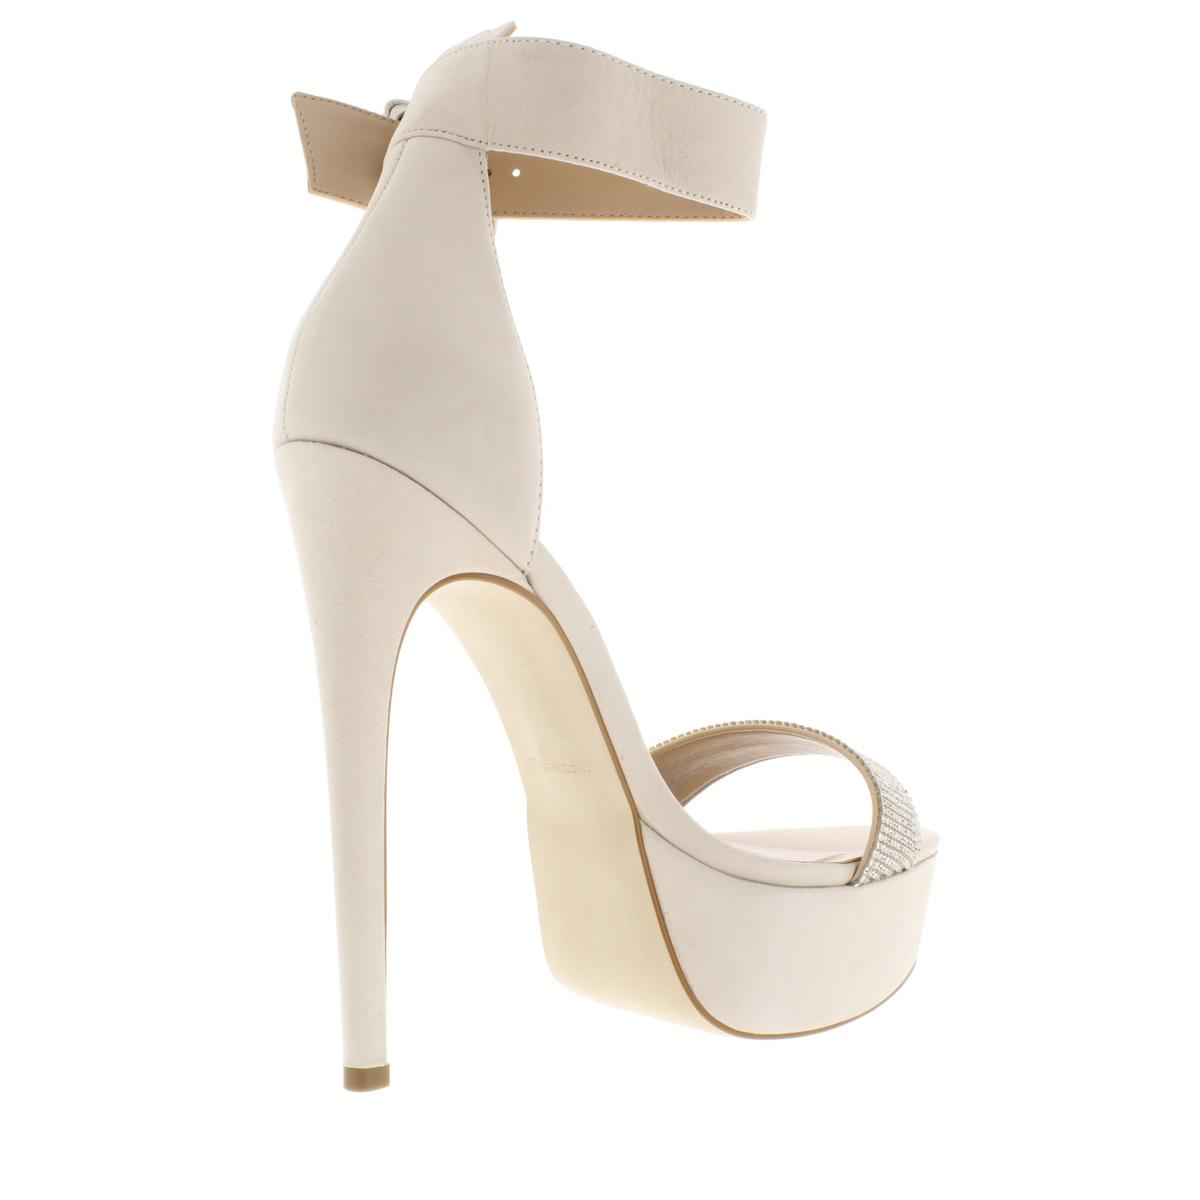 Steve-Madden-Womens-Sultry-Suede-Stiletto-Platform-Heels-Shoes-BHFO-7084 thumbnail 4